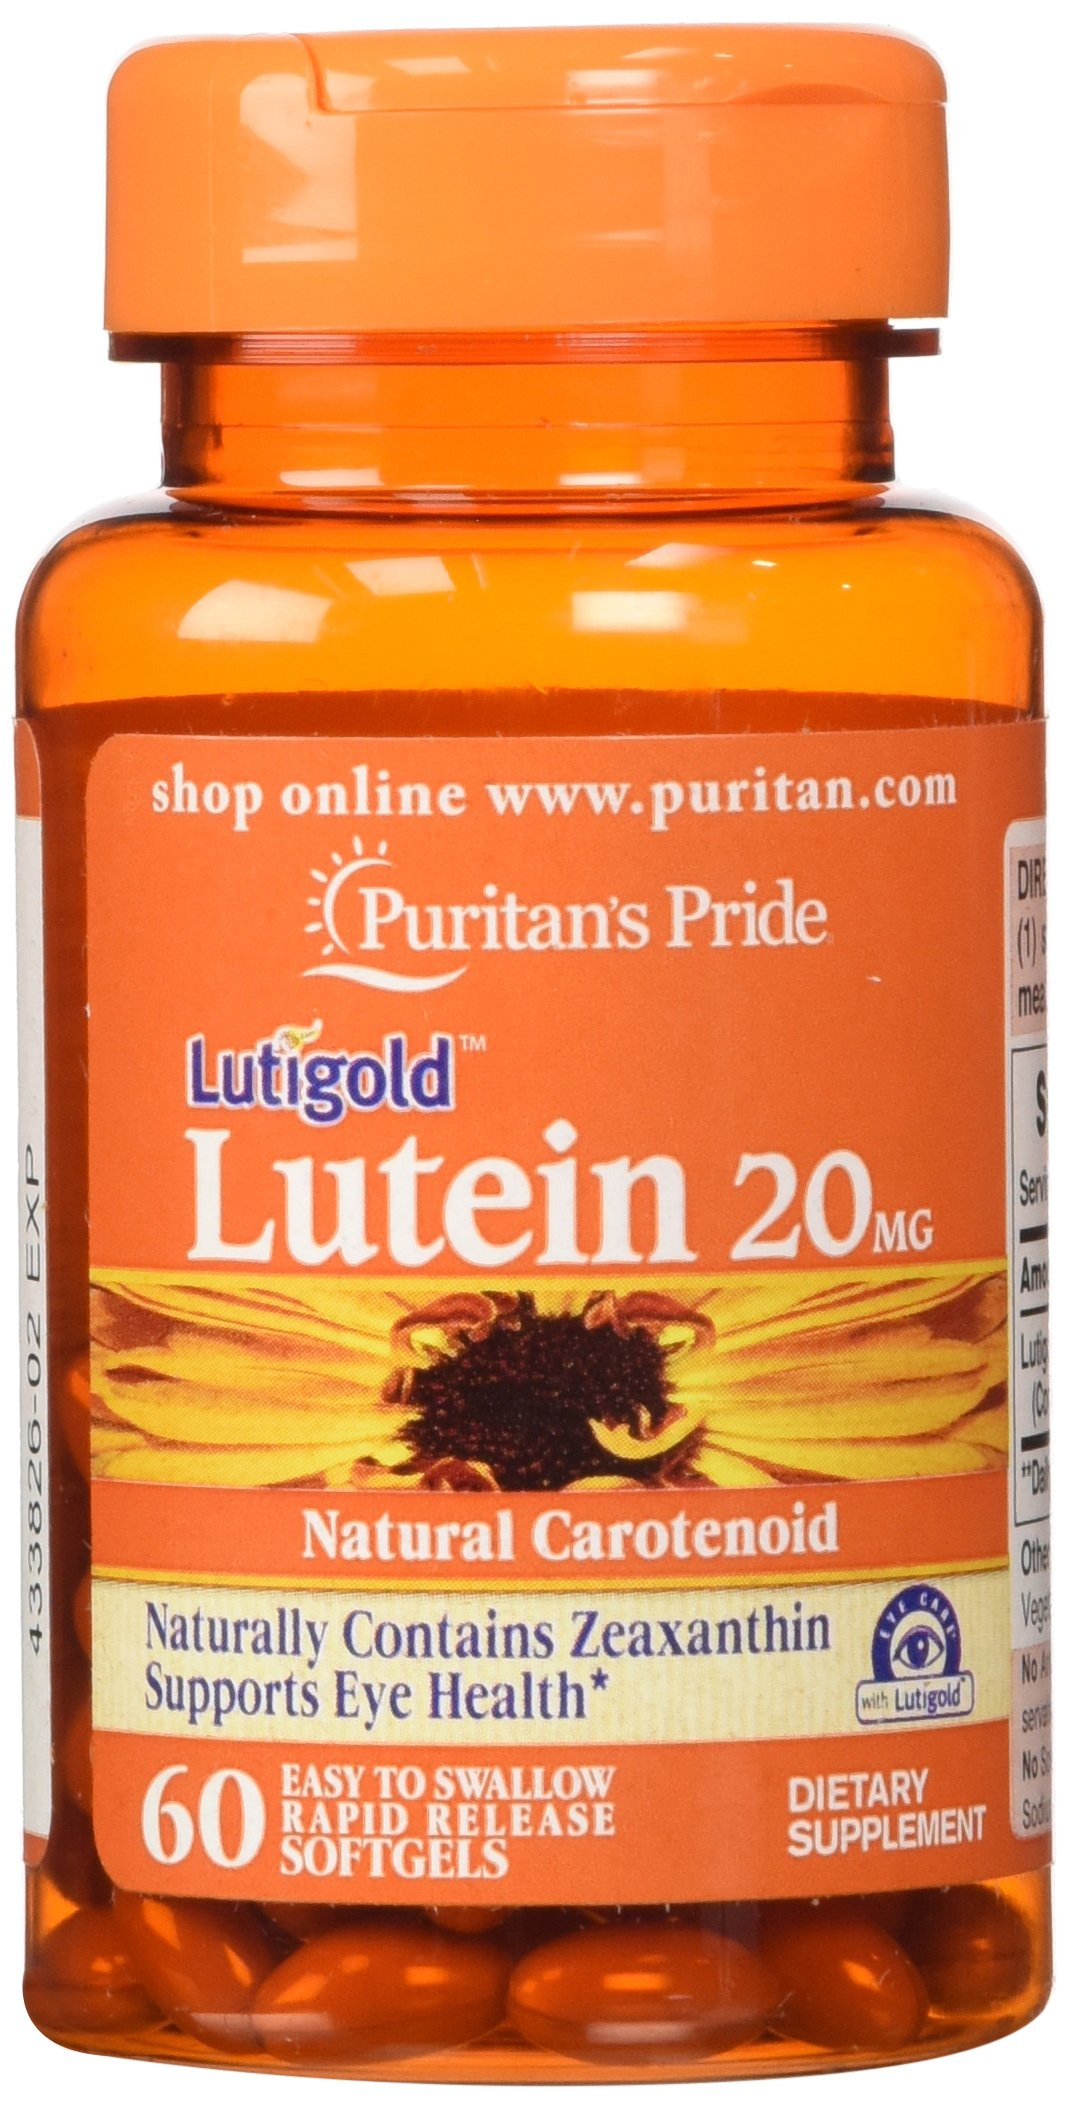 Lutein With Optilut 10 Mg: Amazon.com: Optimal Blend Bio Cell Collagen Capsules, 60